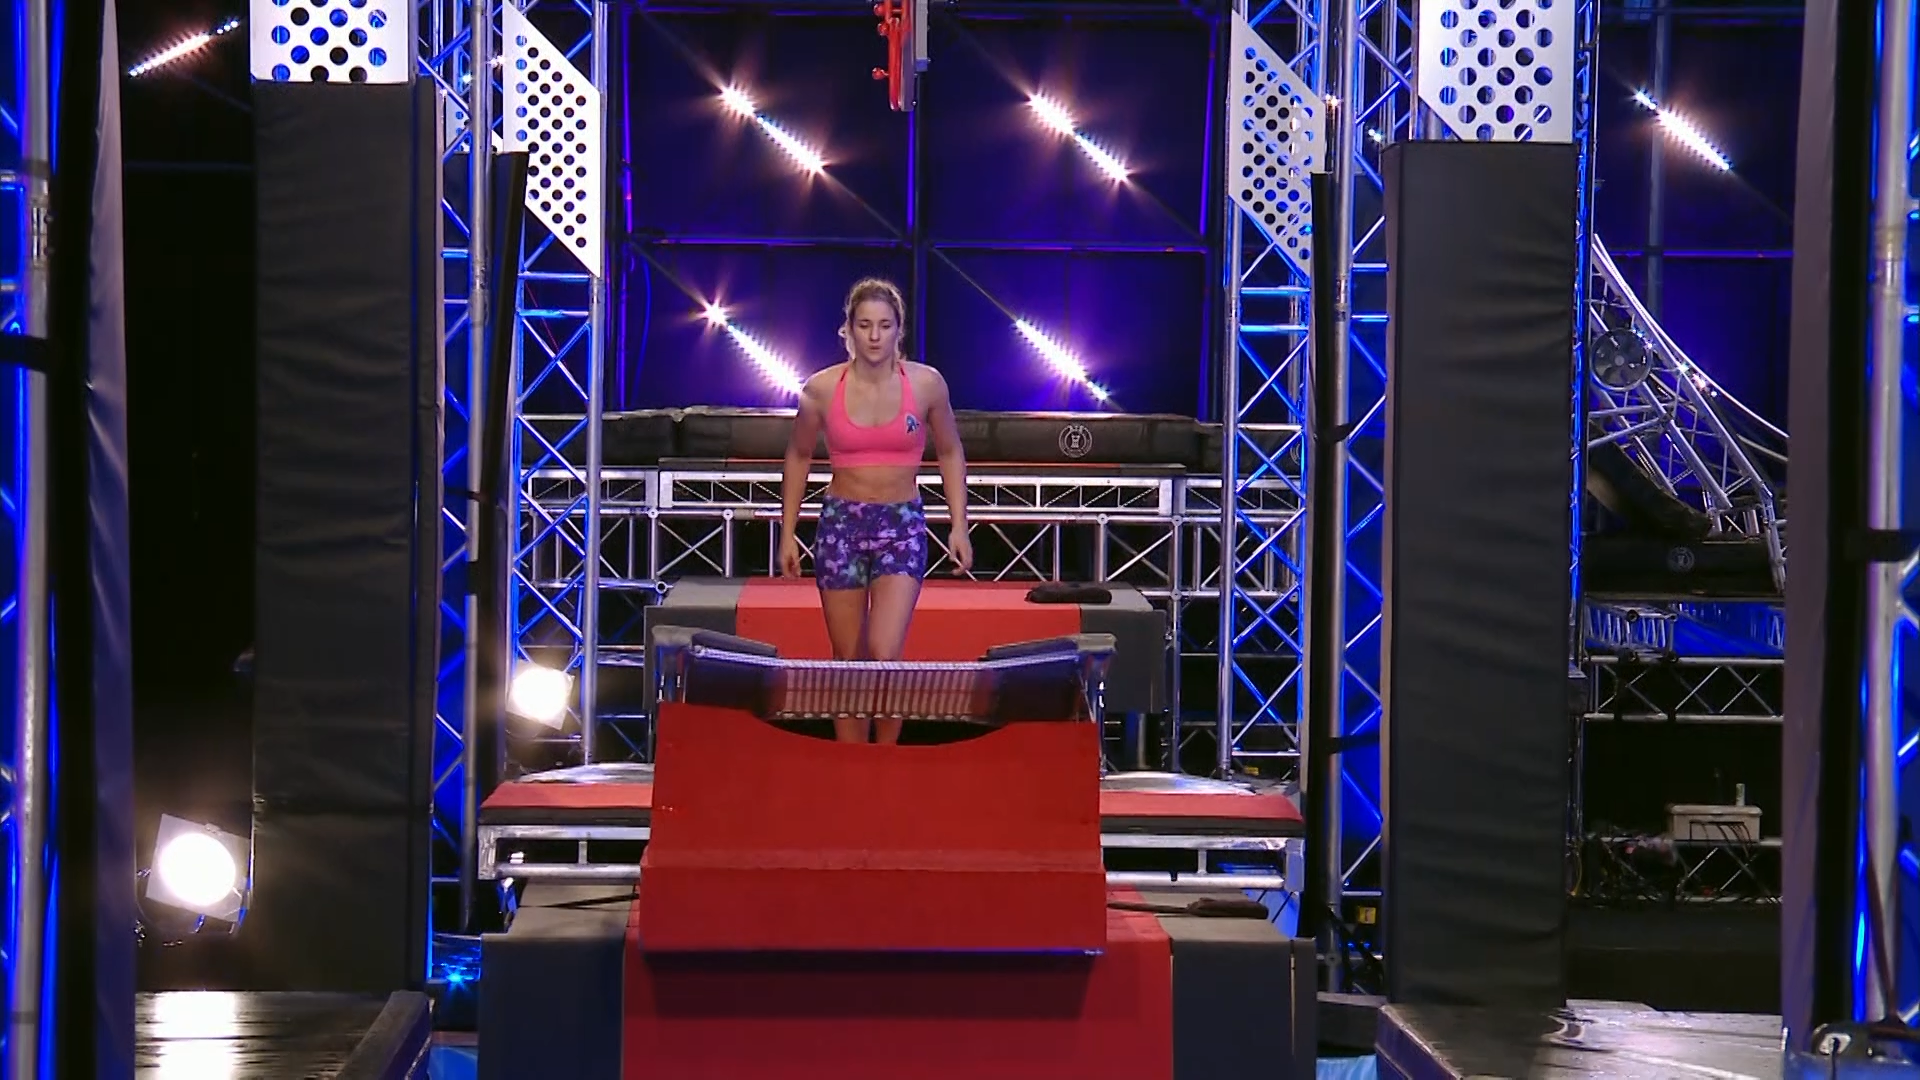 Ep8 - Raphaela Wiget splashes out on the Bar Hop - Australian Ninja Warrior 2019